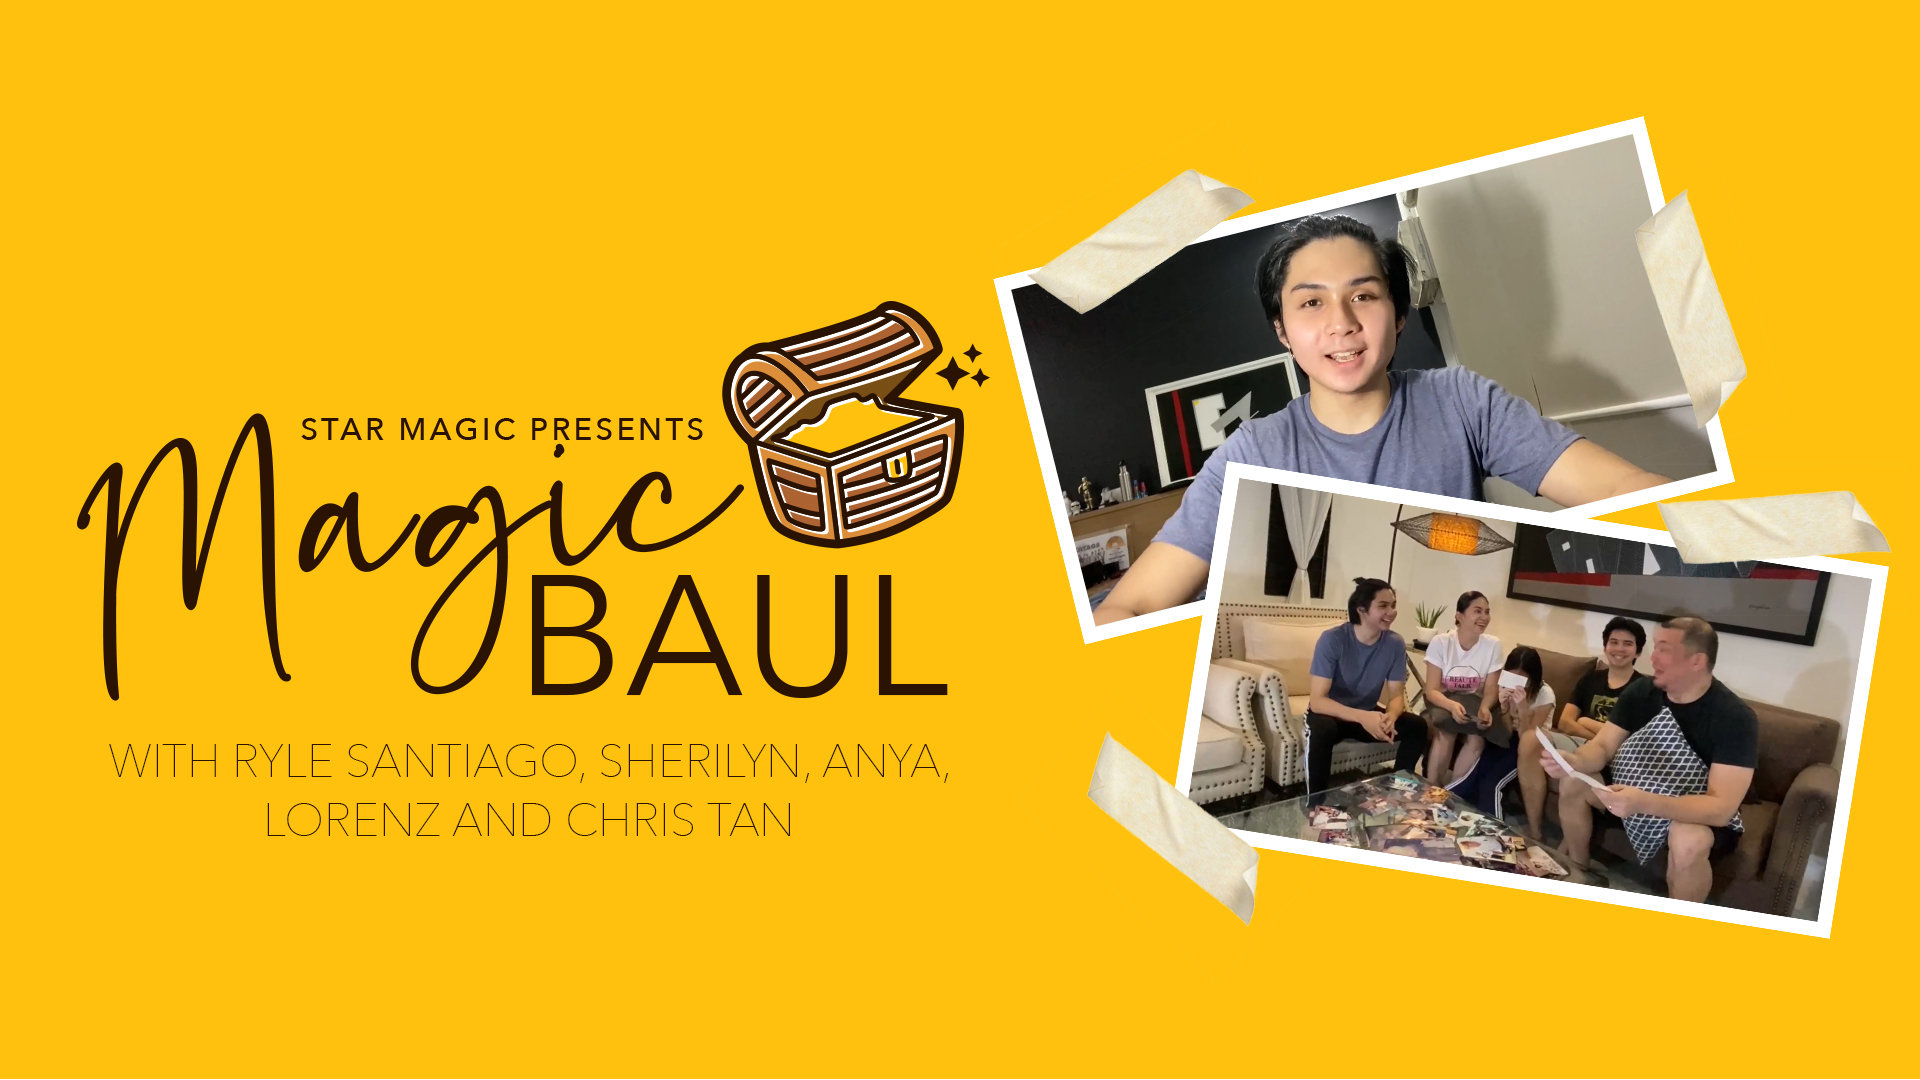 Star Magic Baul: Visiting Ryle Santiago and Family